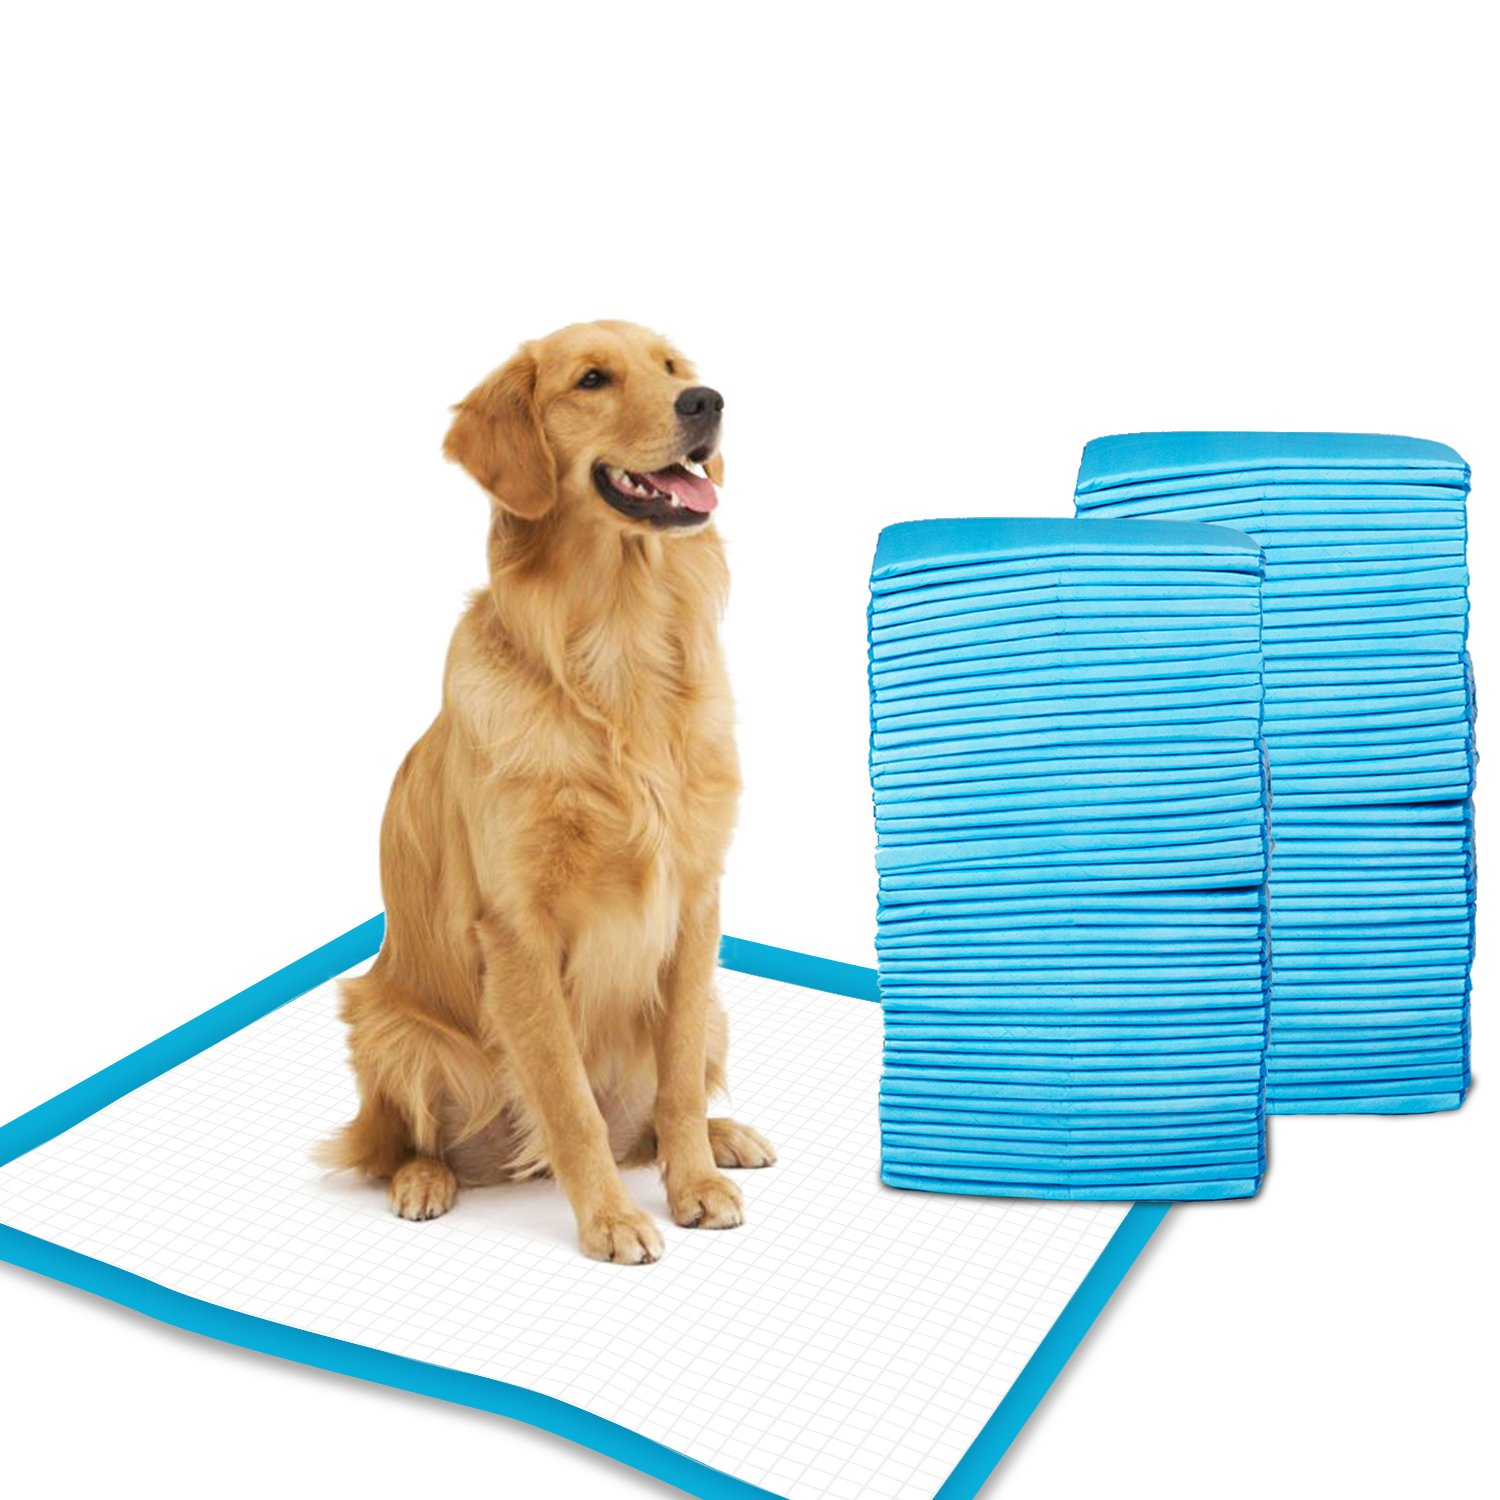 50-Count Gardner Pet Super-Absorbent 24 by 24 Inches Dog Training Pads 50 Count of Pads